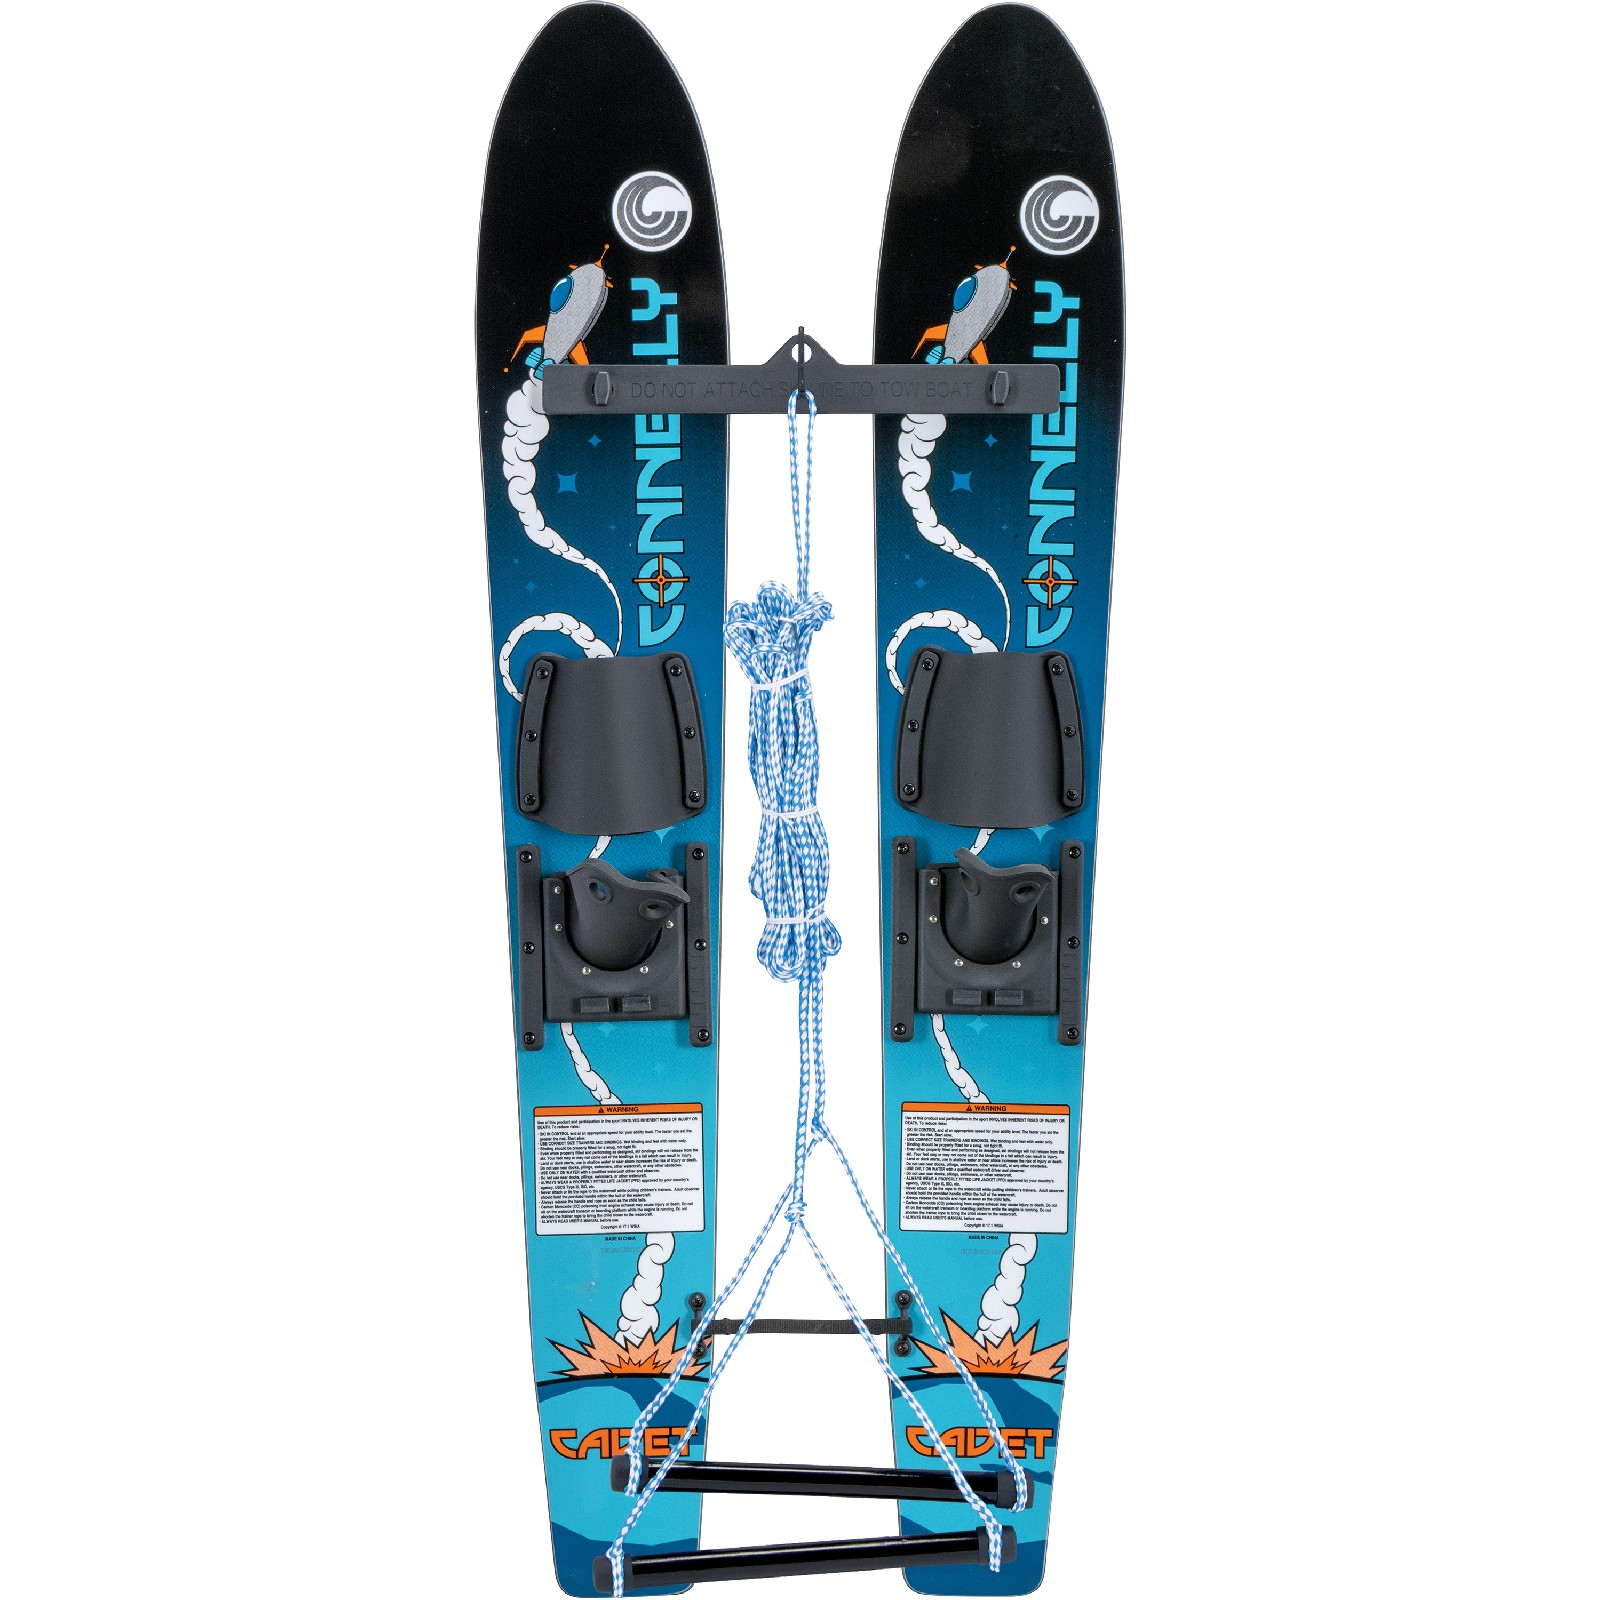 CADET 45'' W/ CHILD SLIDE ADJUSTABLE COMBO CONNELLY 2019